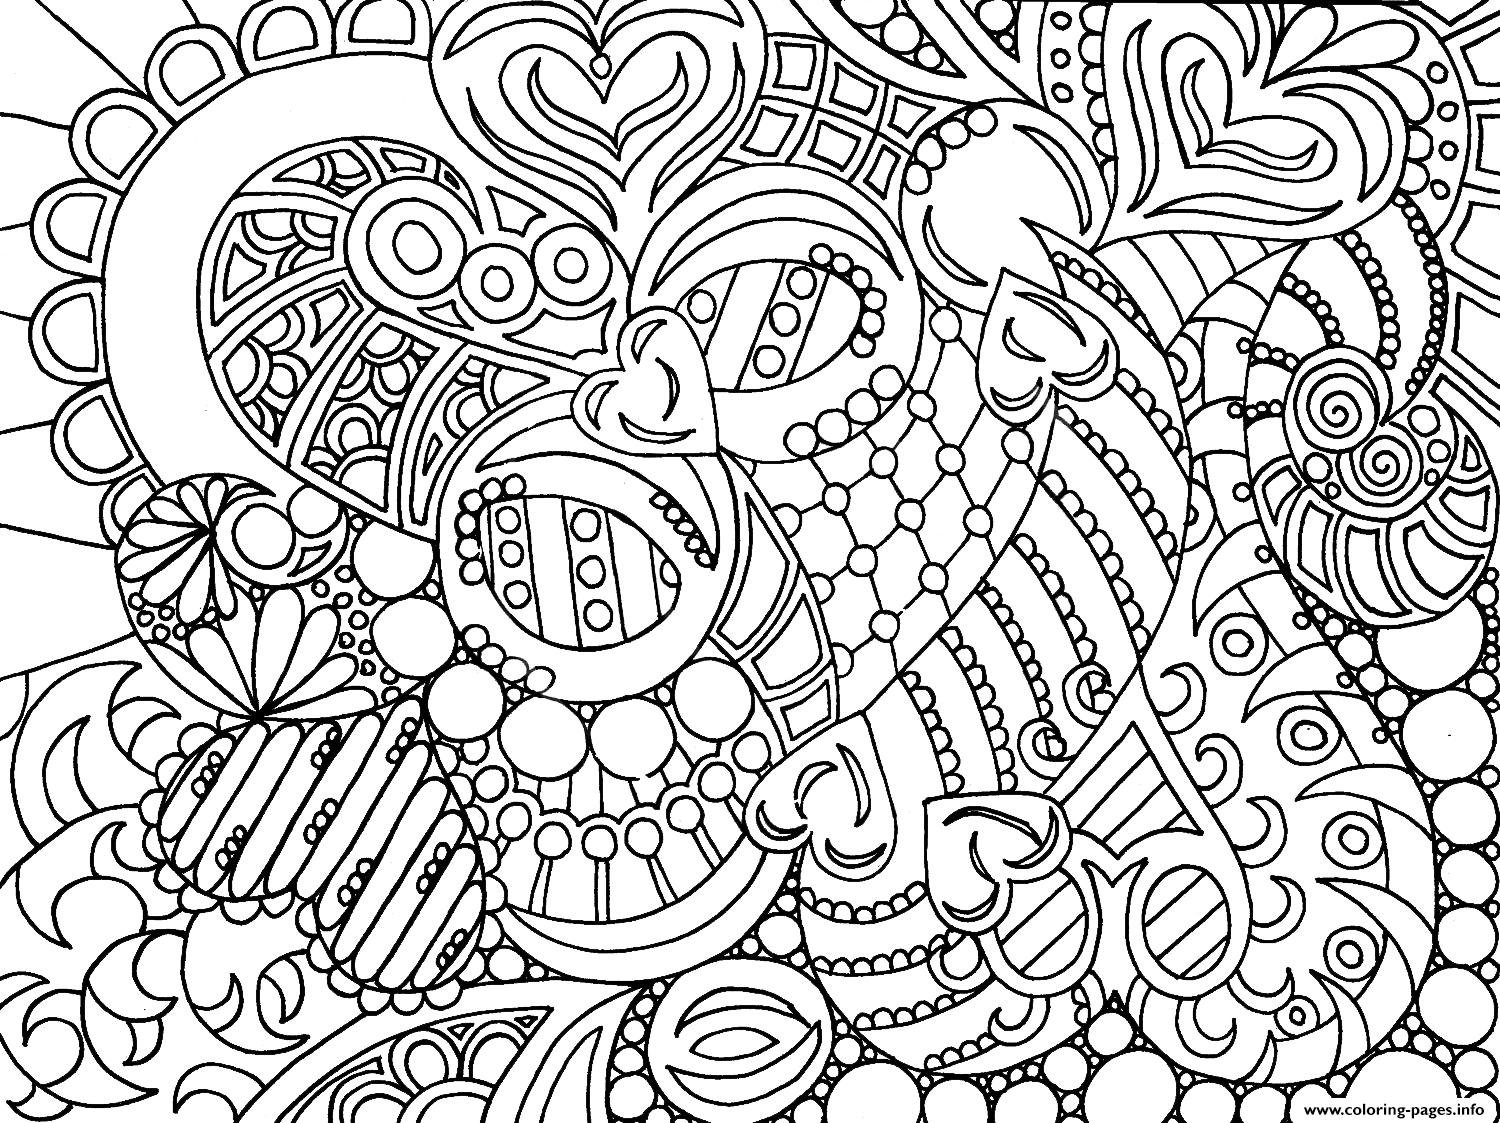 cool printable coloring pages for adults cool printable coloring pages for adults at getdrawings pages for adults cool coloring printable